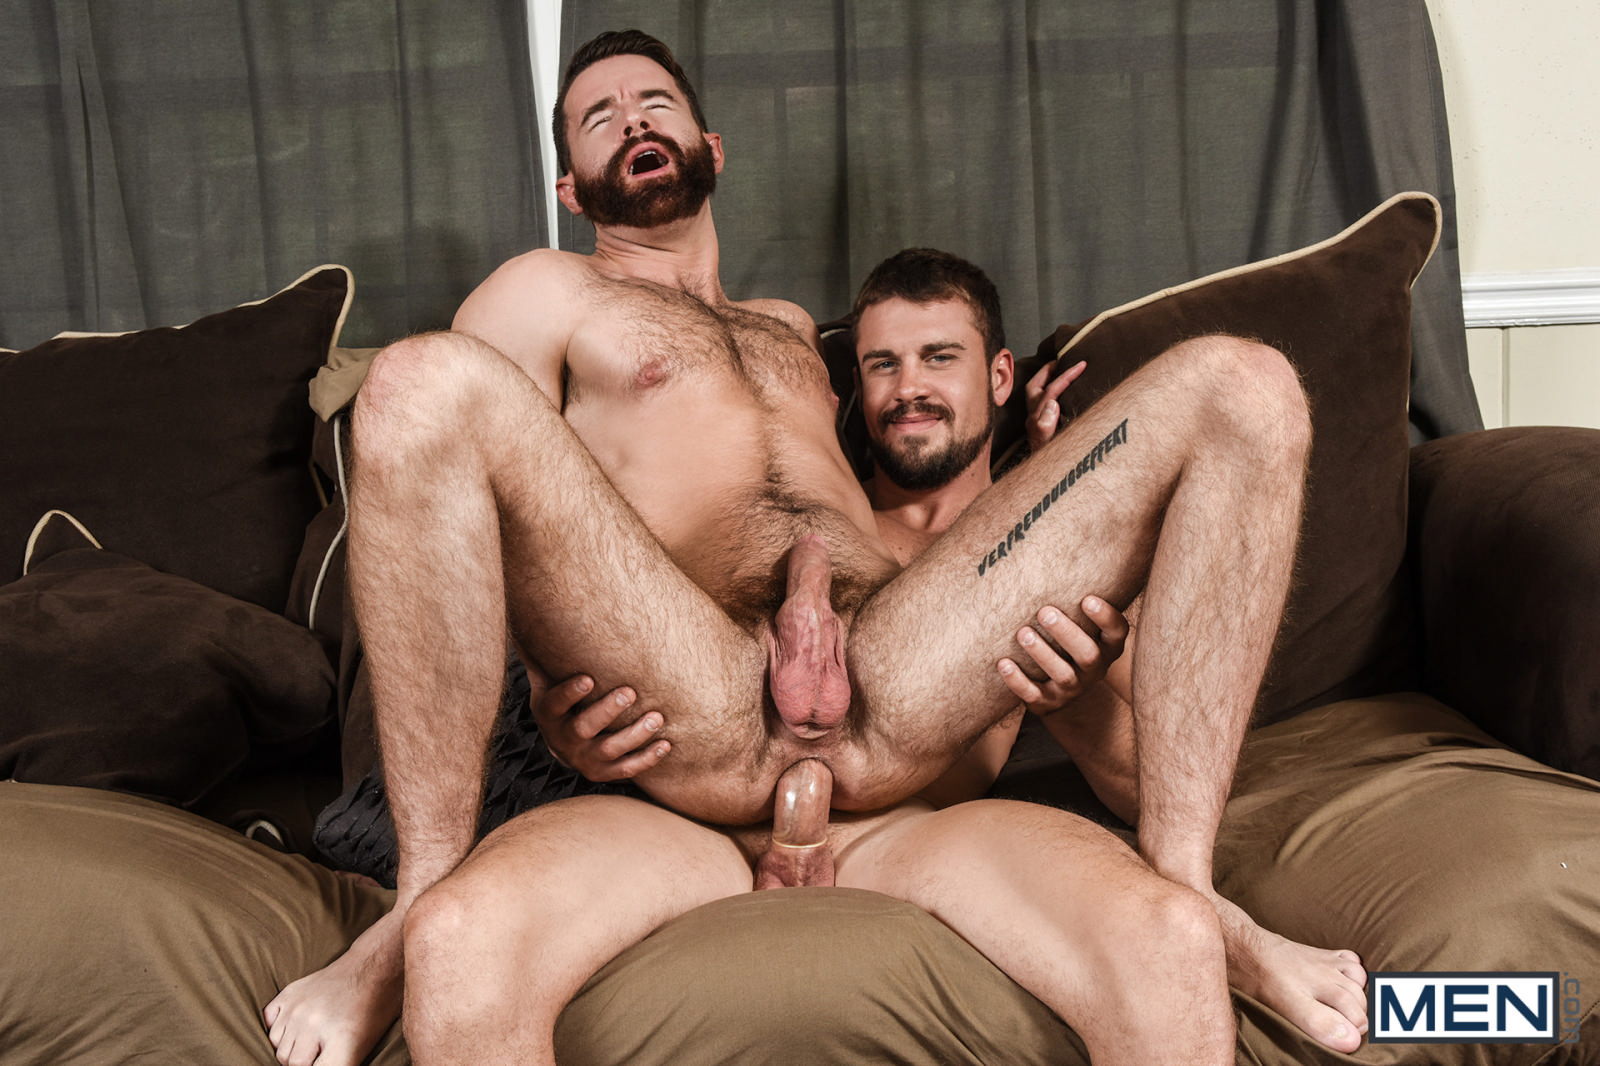 gay dating for gay dating in the other members; newest